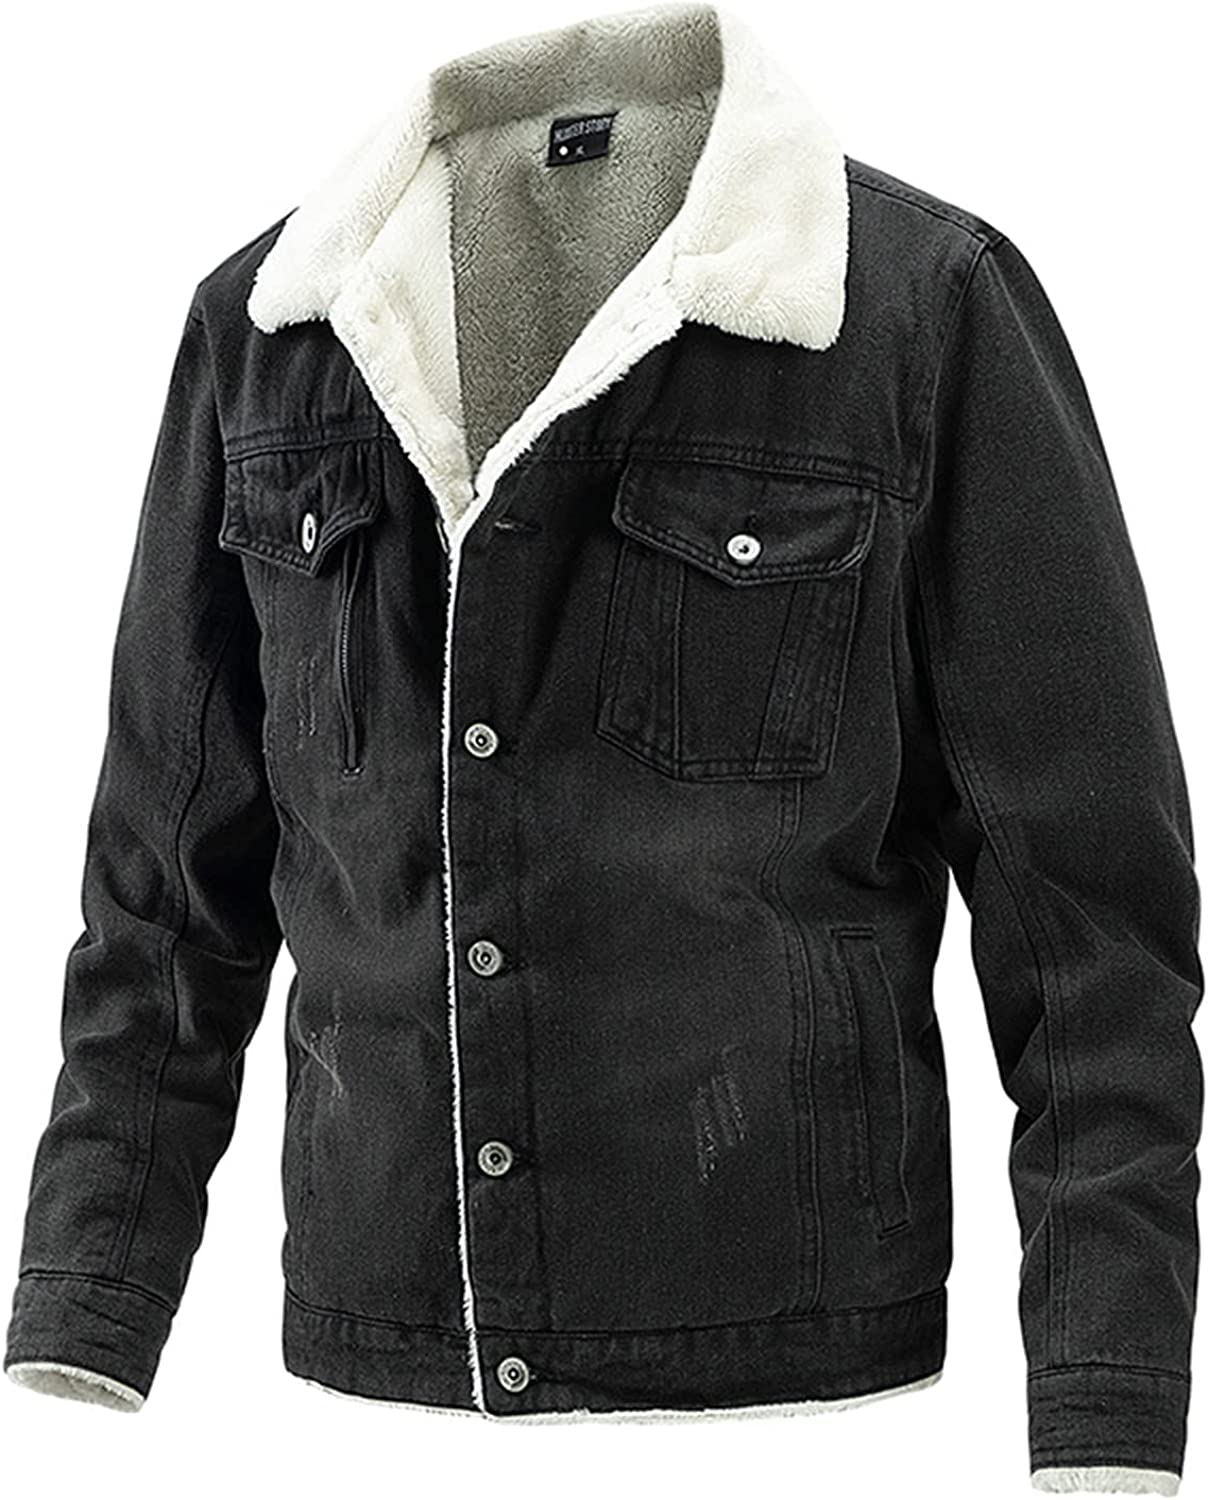 Mens Max 71% OFF Sherpa Jean Trucker Jacket Men Casual Animer and price revision Vintage Jack